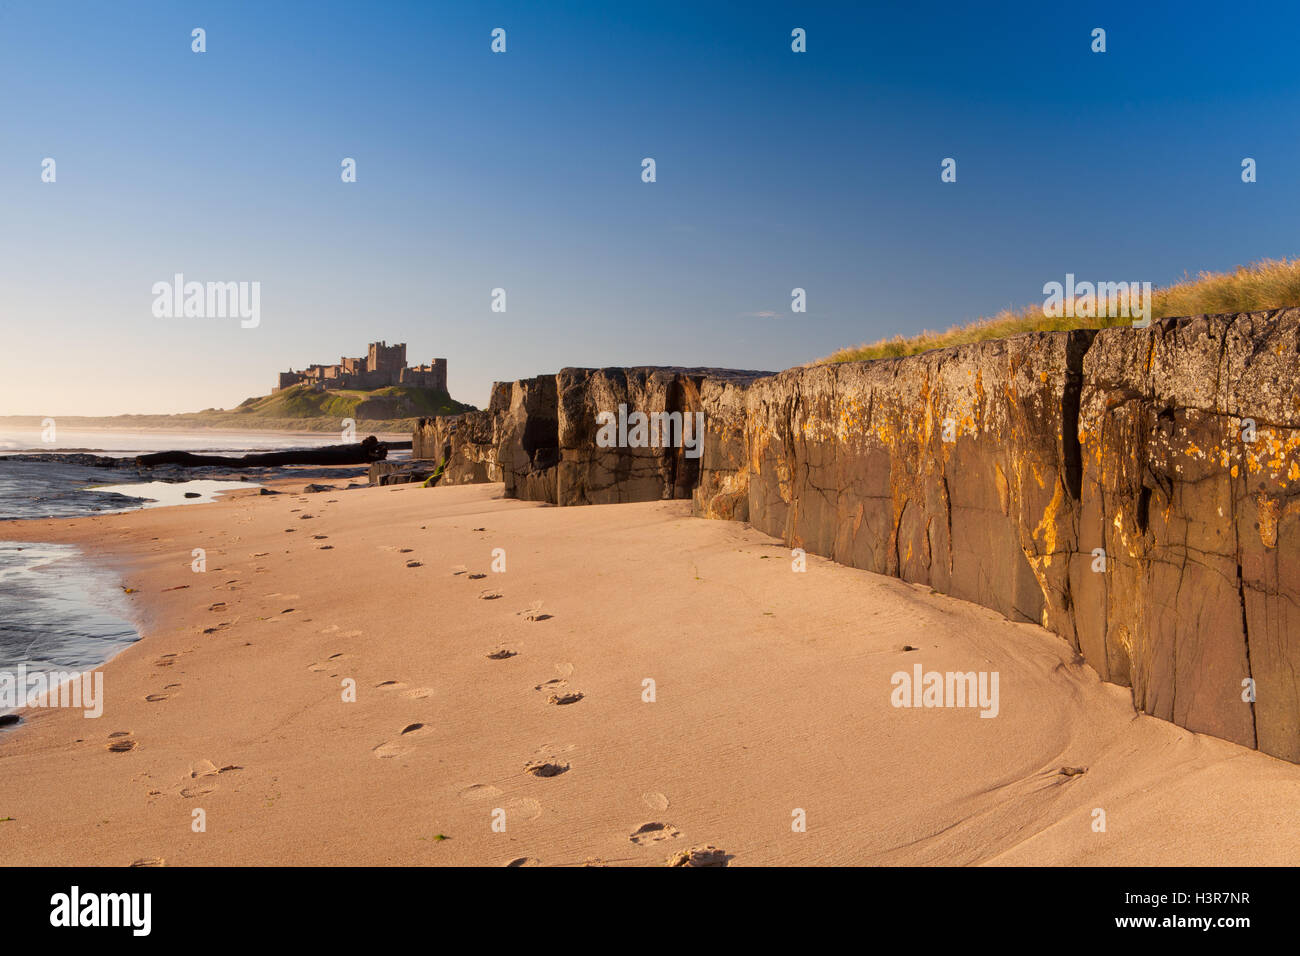 Bamburgh Castle with Rocks. Bamburgh Castle viewed from the beach with rock in the foreground - Stock Image